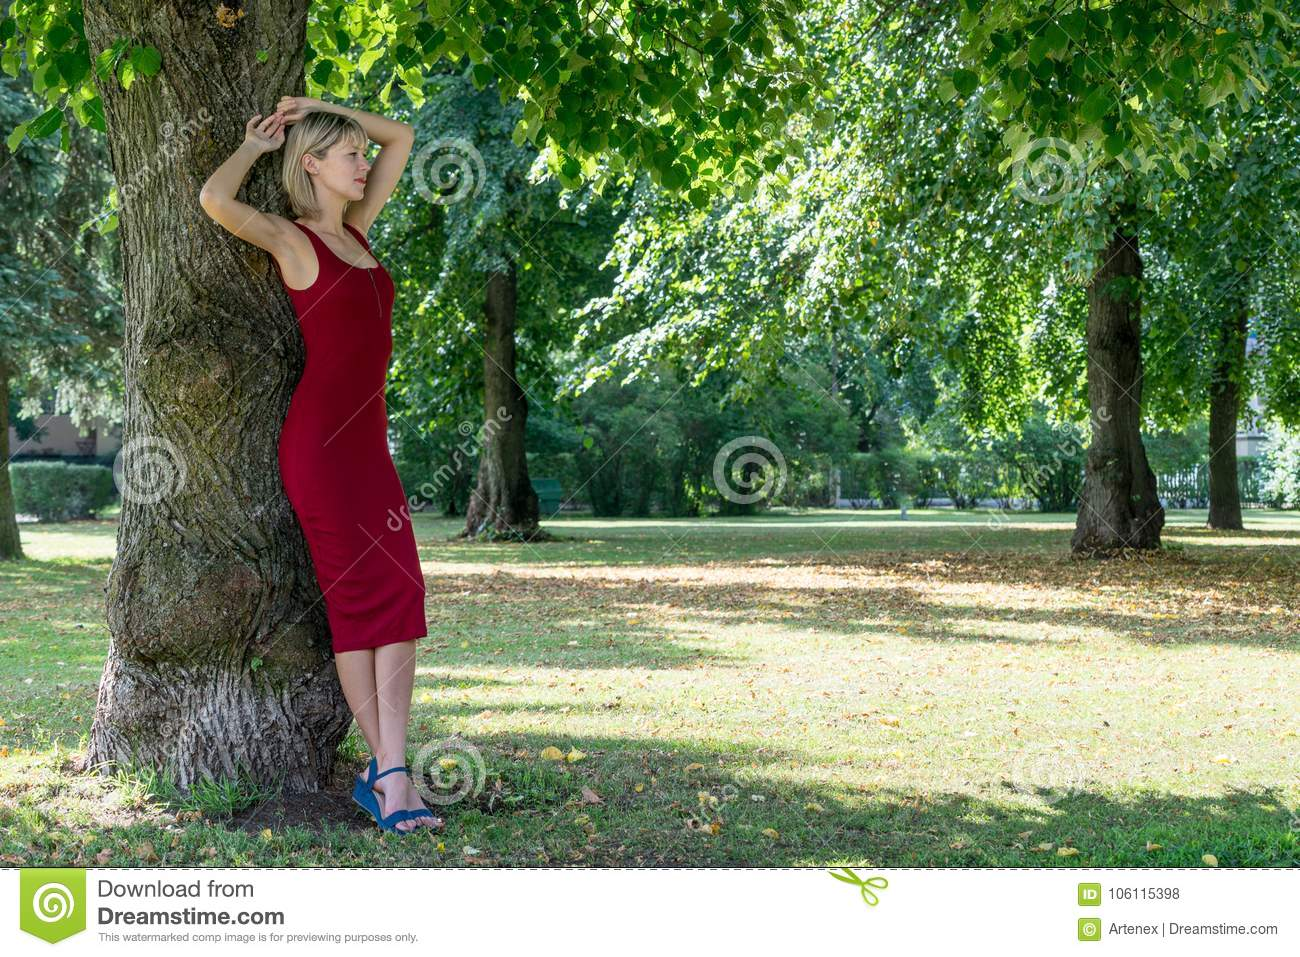 Blonde woman hugging a tree in park. Young girl in a red dress resting in nature, leaned against a tree.